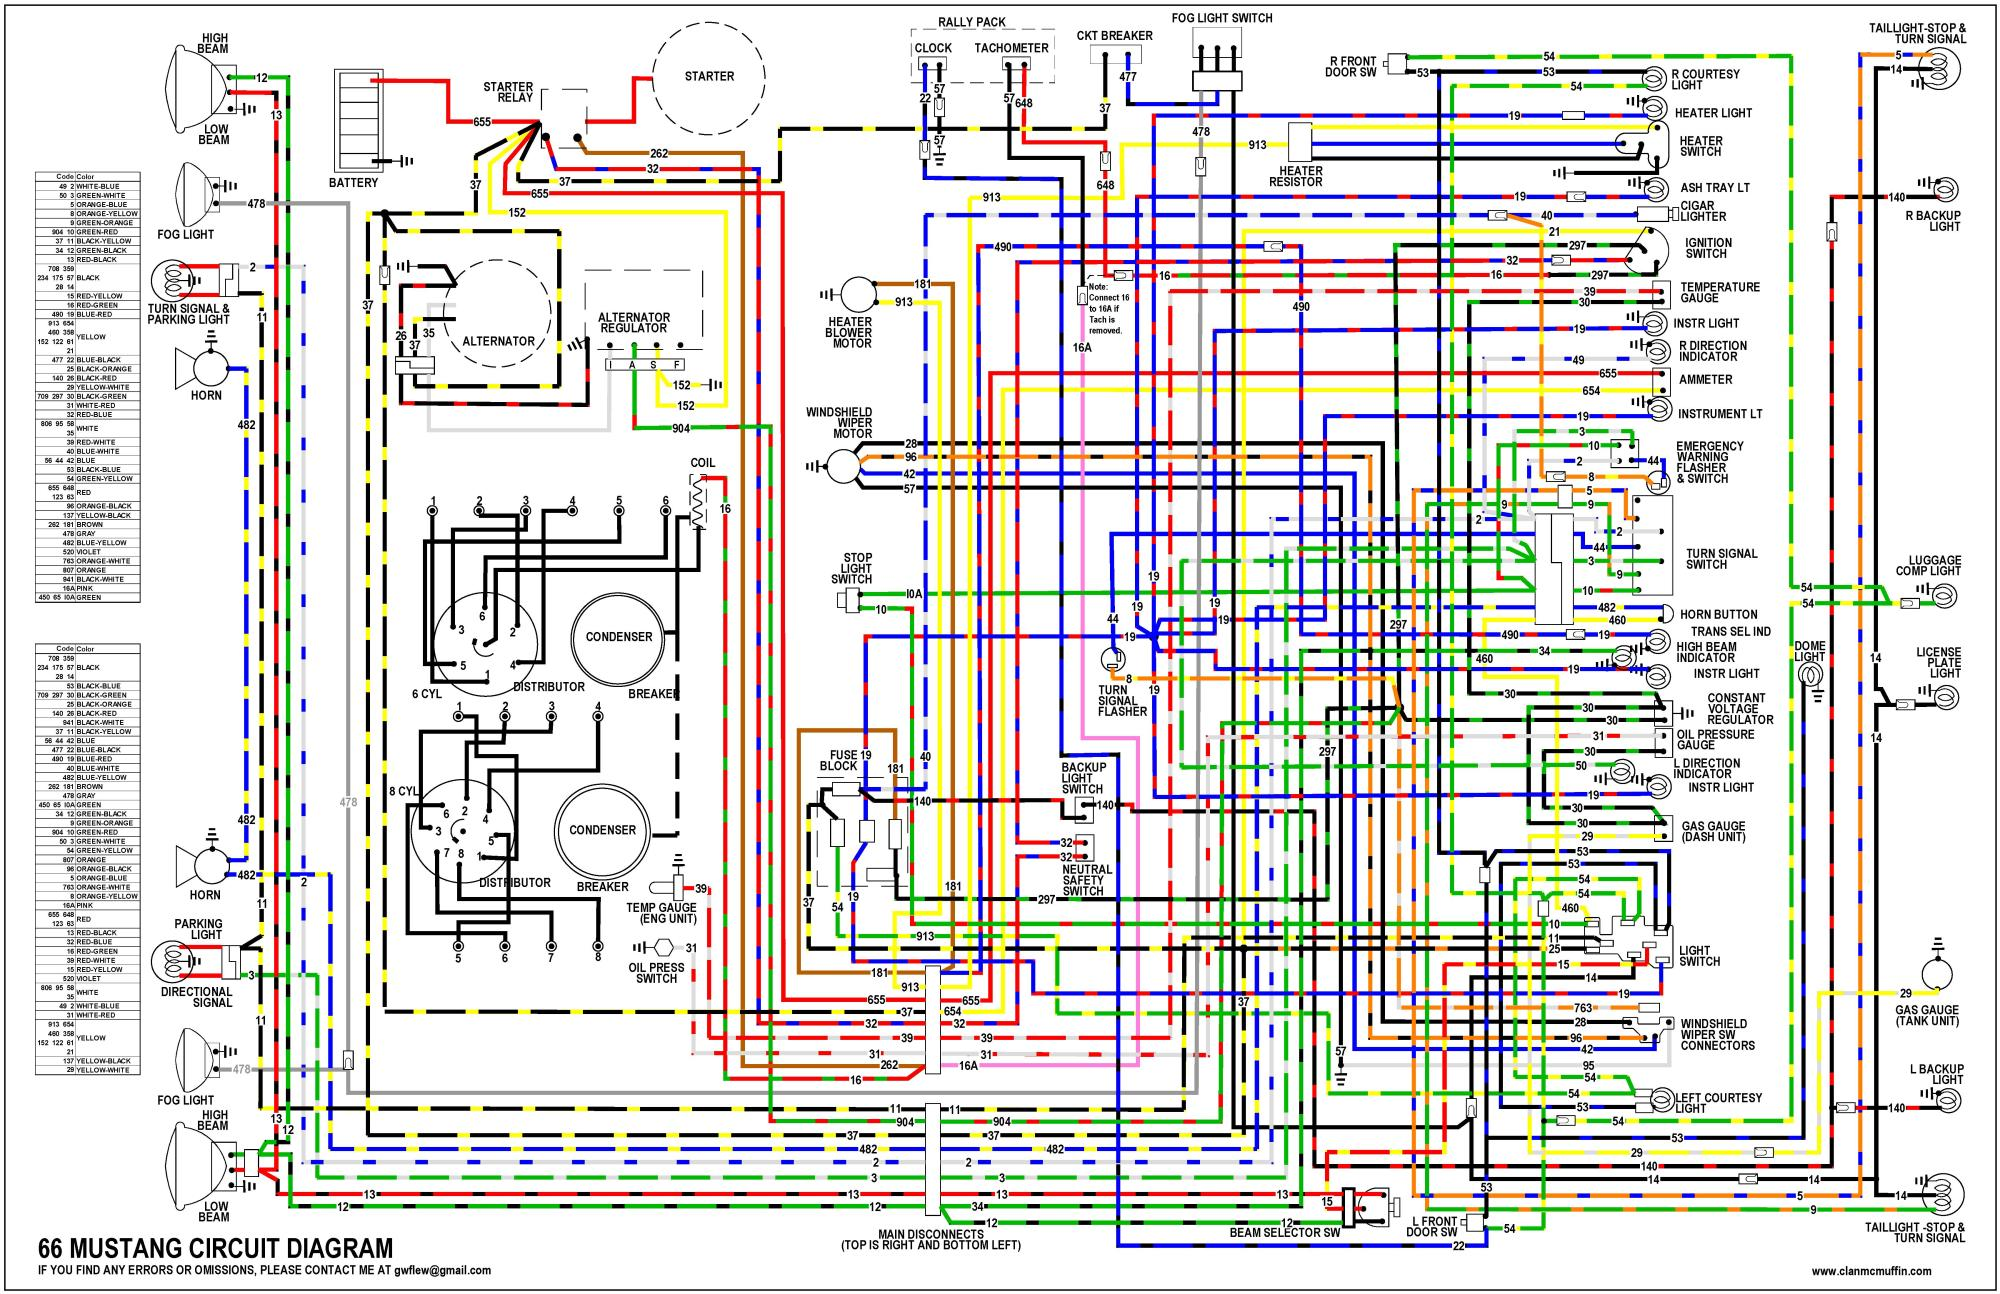 hight resolution of  download the full set of colorized wiring diagrams